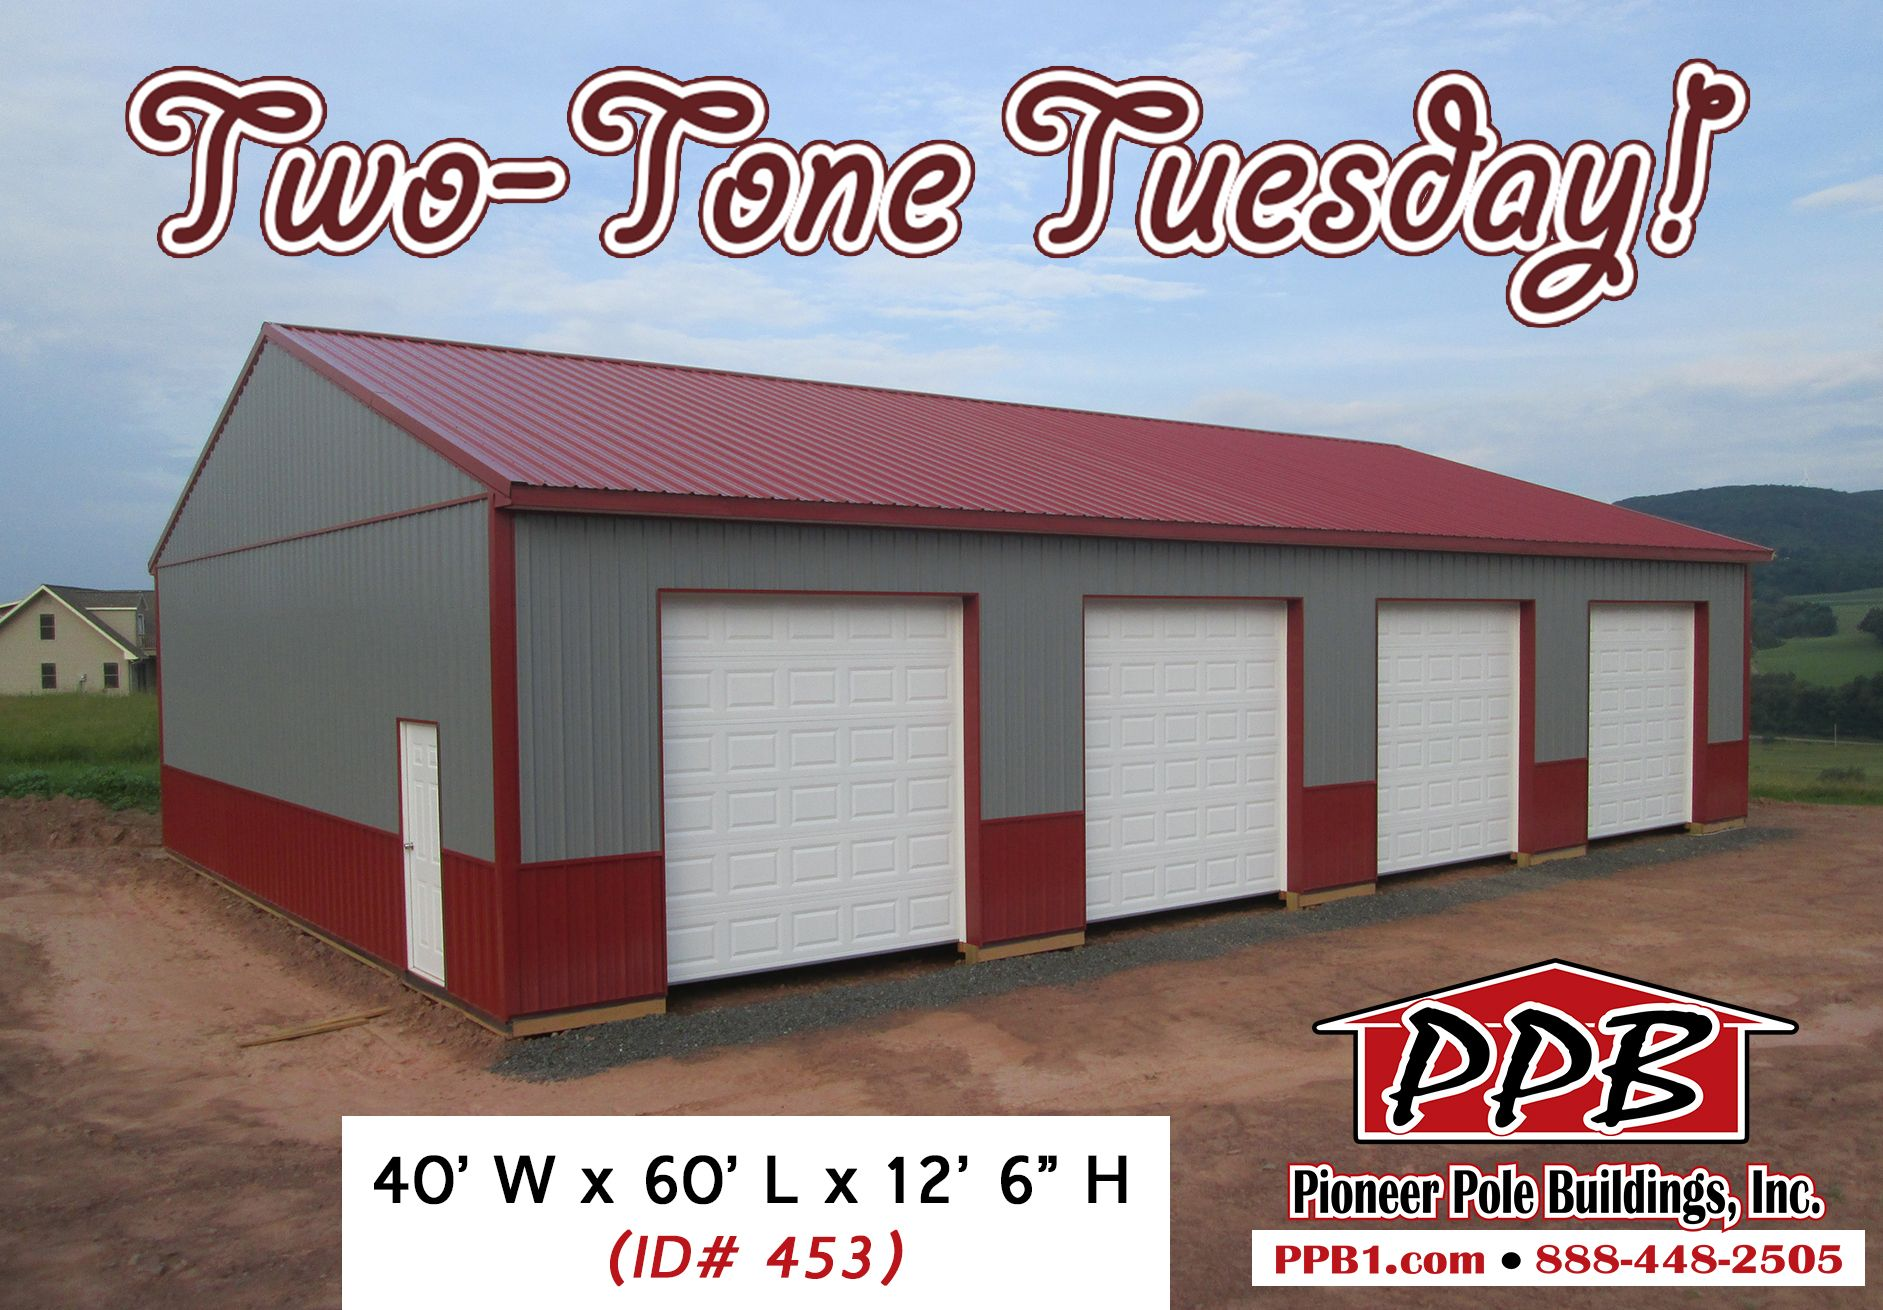 A nice 4 car garage for this two tone tuesday dimensions for 4 car garage dimensions